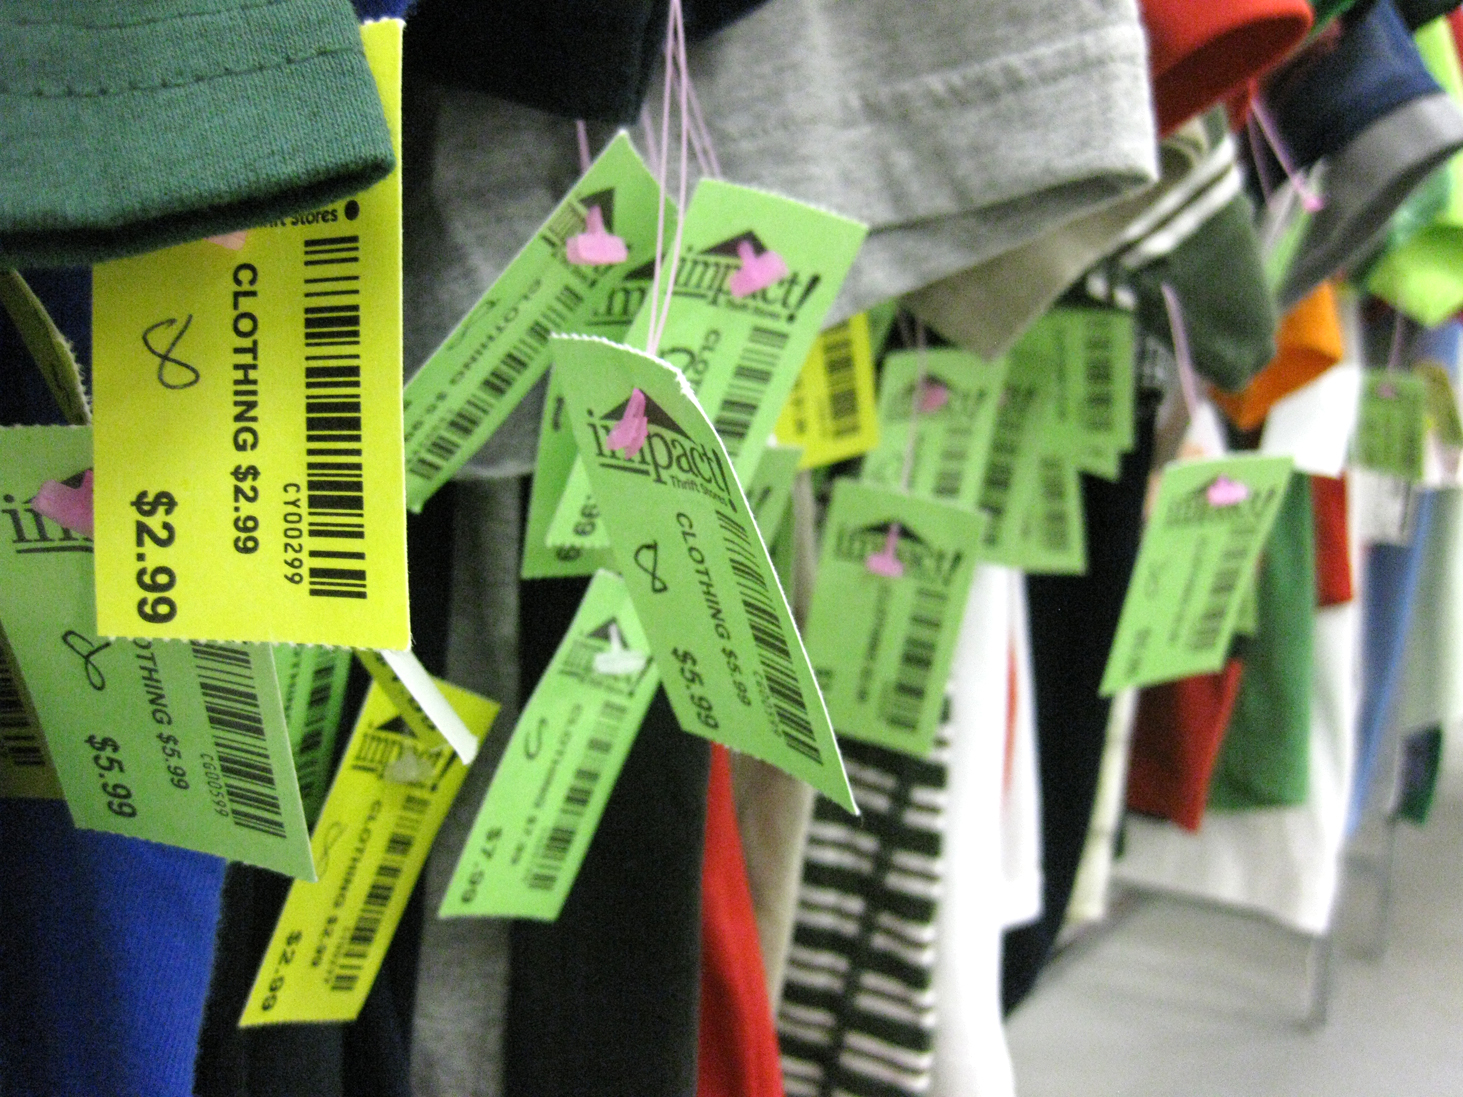 Custom Grade A Coated paper price tags clothing Artwork ... |Price Tags For Clothing